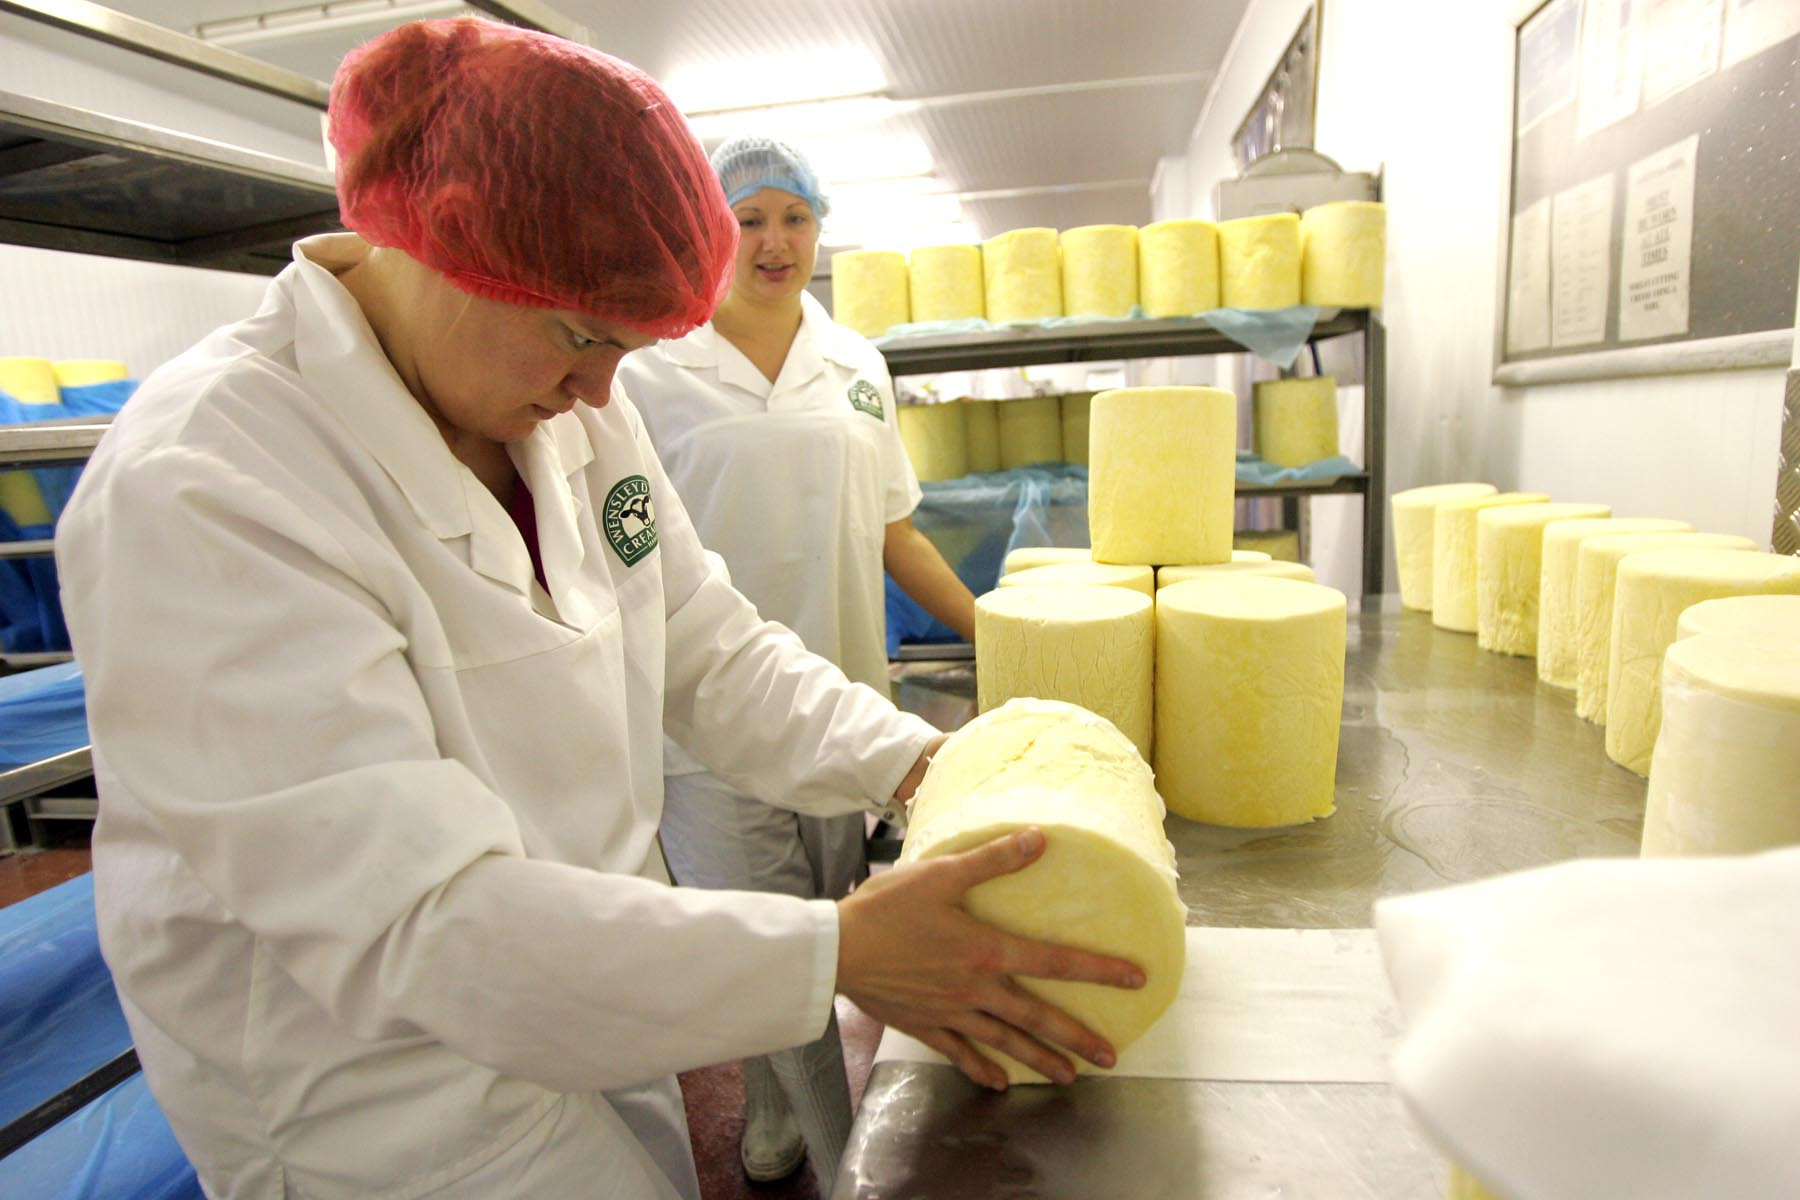 One of North Yorkshire's many local products, Yorkshire Wensleydale, being made at the Wensleydale Creamery, in Hawes. A food festival in Wensleydale has been cele